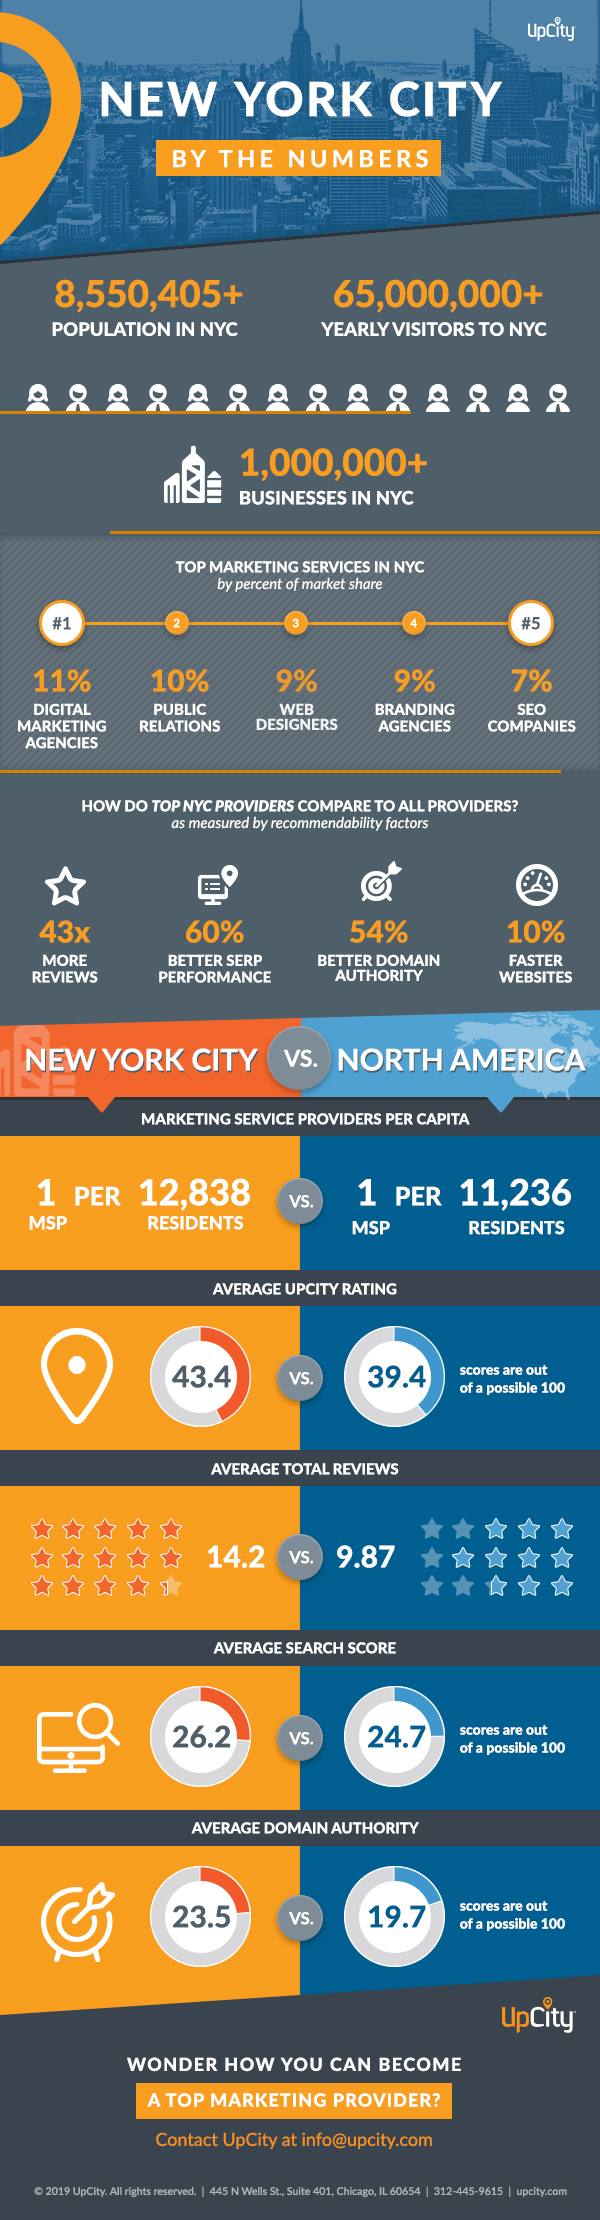 UpCity New York by the Numbers-Get Insights into Top Performing Marketers in New York